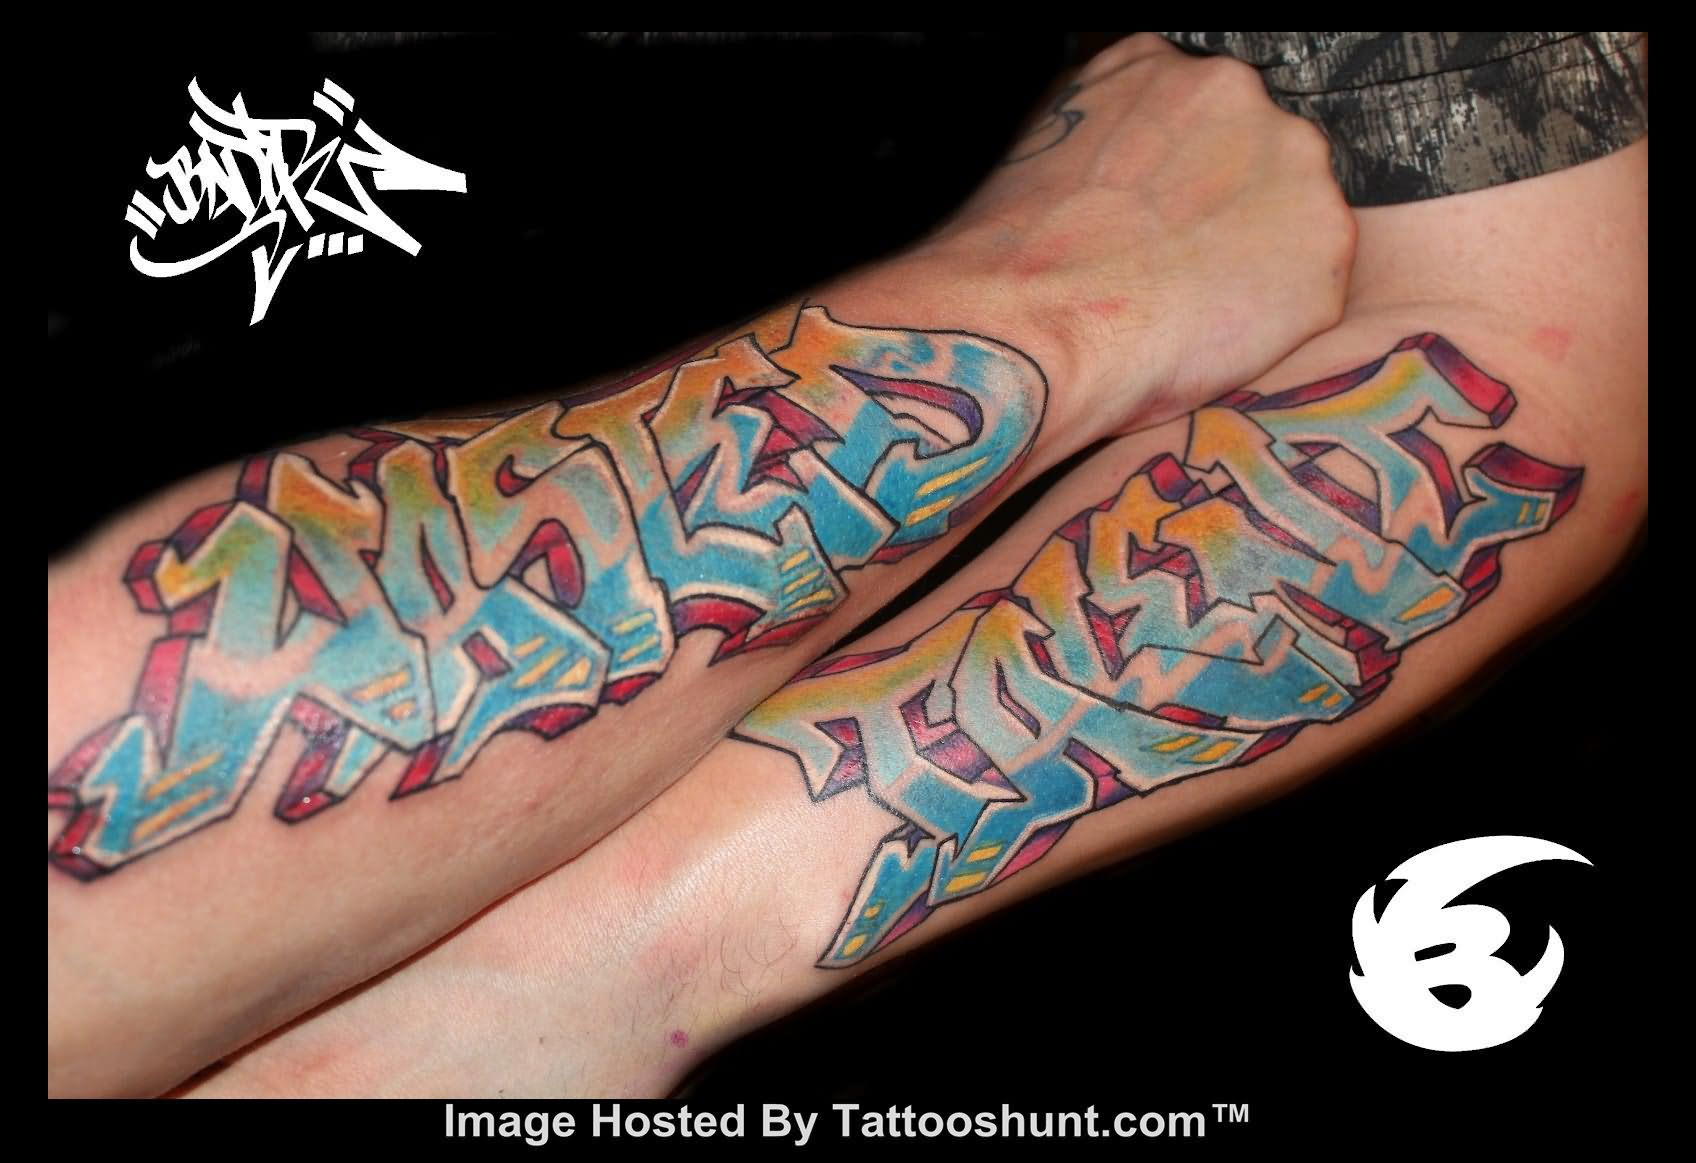 Ambigram Colorful Tattoos On Arms photo - 1